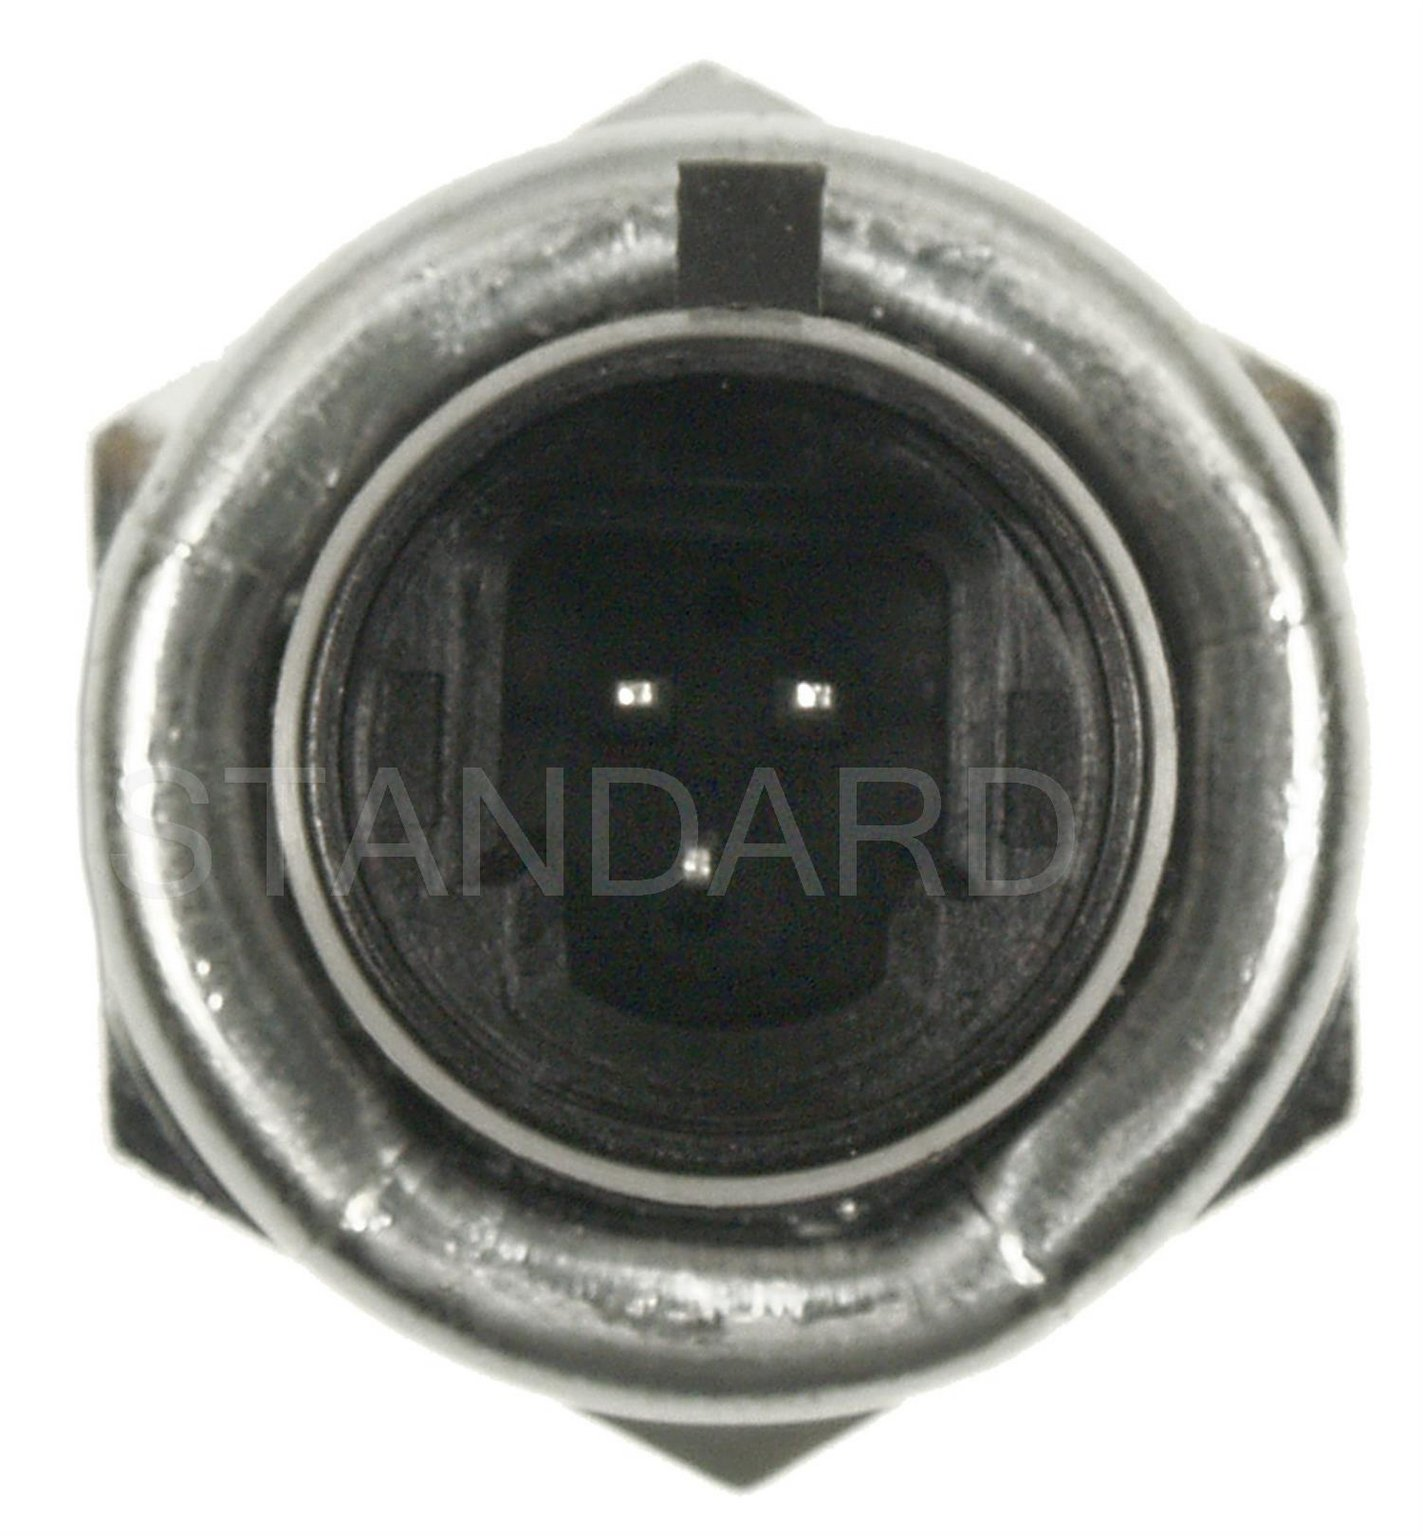 2004 Ford F 250 Super Duty Diesel Injection Control Pressure Sensor Icp Connector Si Icp101